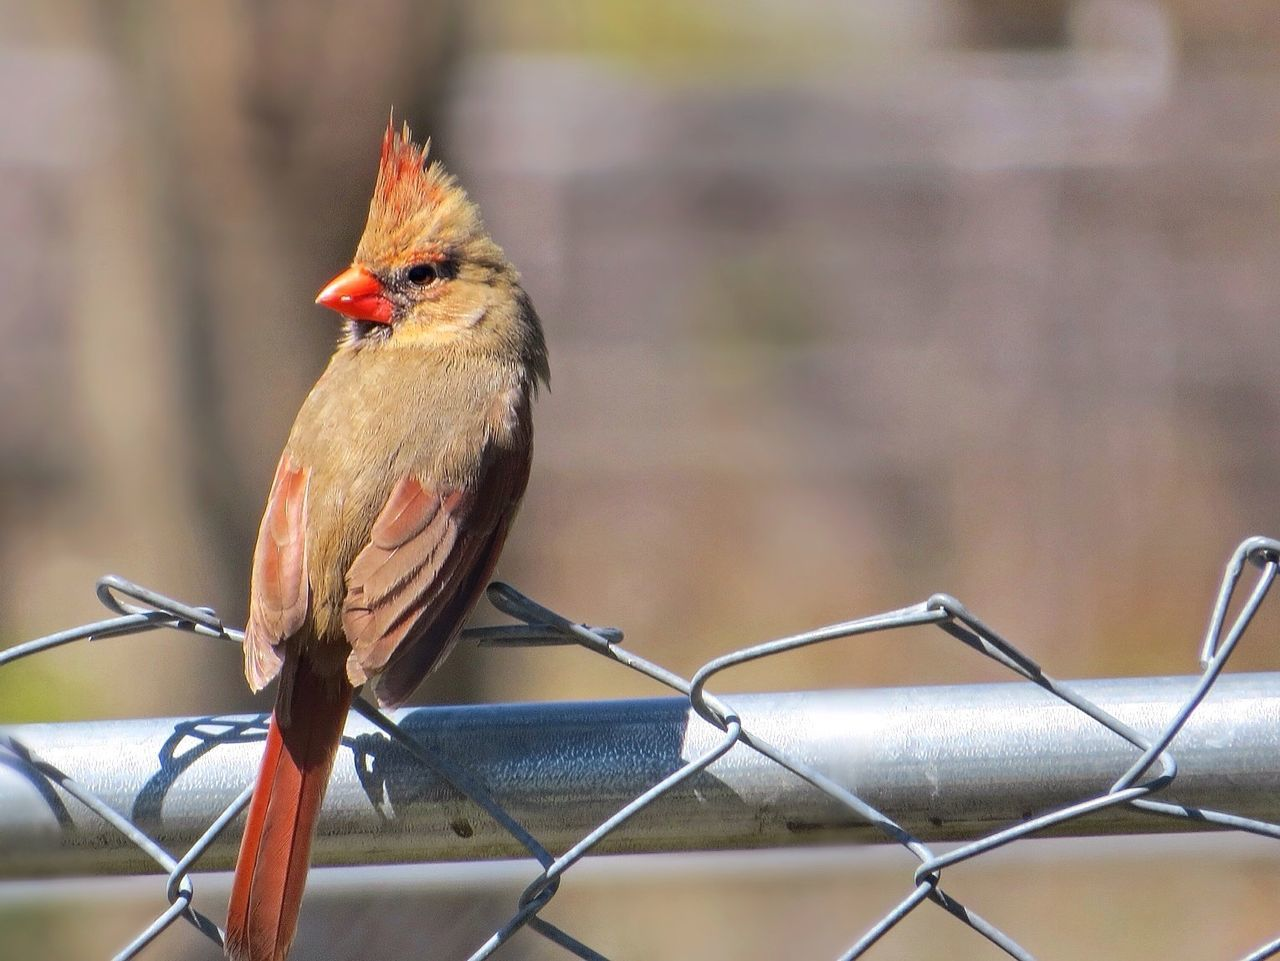 She's a beauty~ Female Cardinal Bird Photography Birds_collection Birds Of EyeEm  Birdwatching Nature_collection Spring 2016 Fence Feathers Wings Feathered Friends Outdoor Photography Backyard Nature On Your Doorstep From My Point Of View Myyard Check This Out Appreciation Lessismore Close-up Hanging Out Naturelovers Nature_perfection Bird Watching Birdfreaks Makesmesmile 😍💞